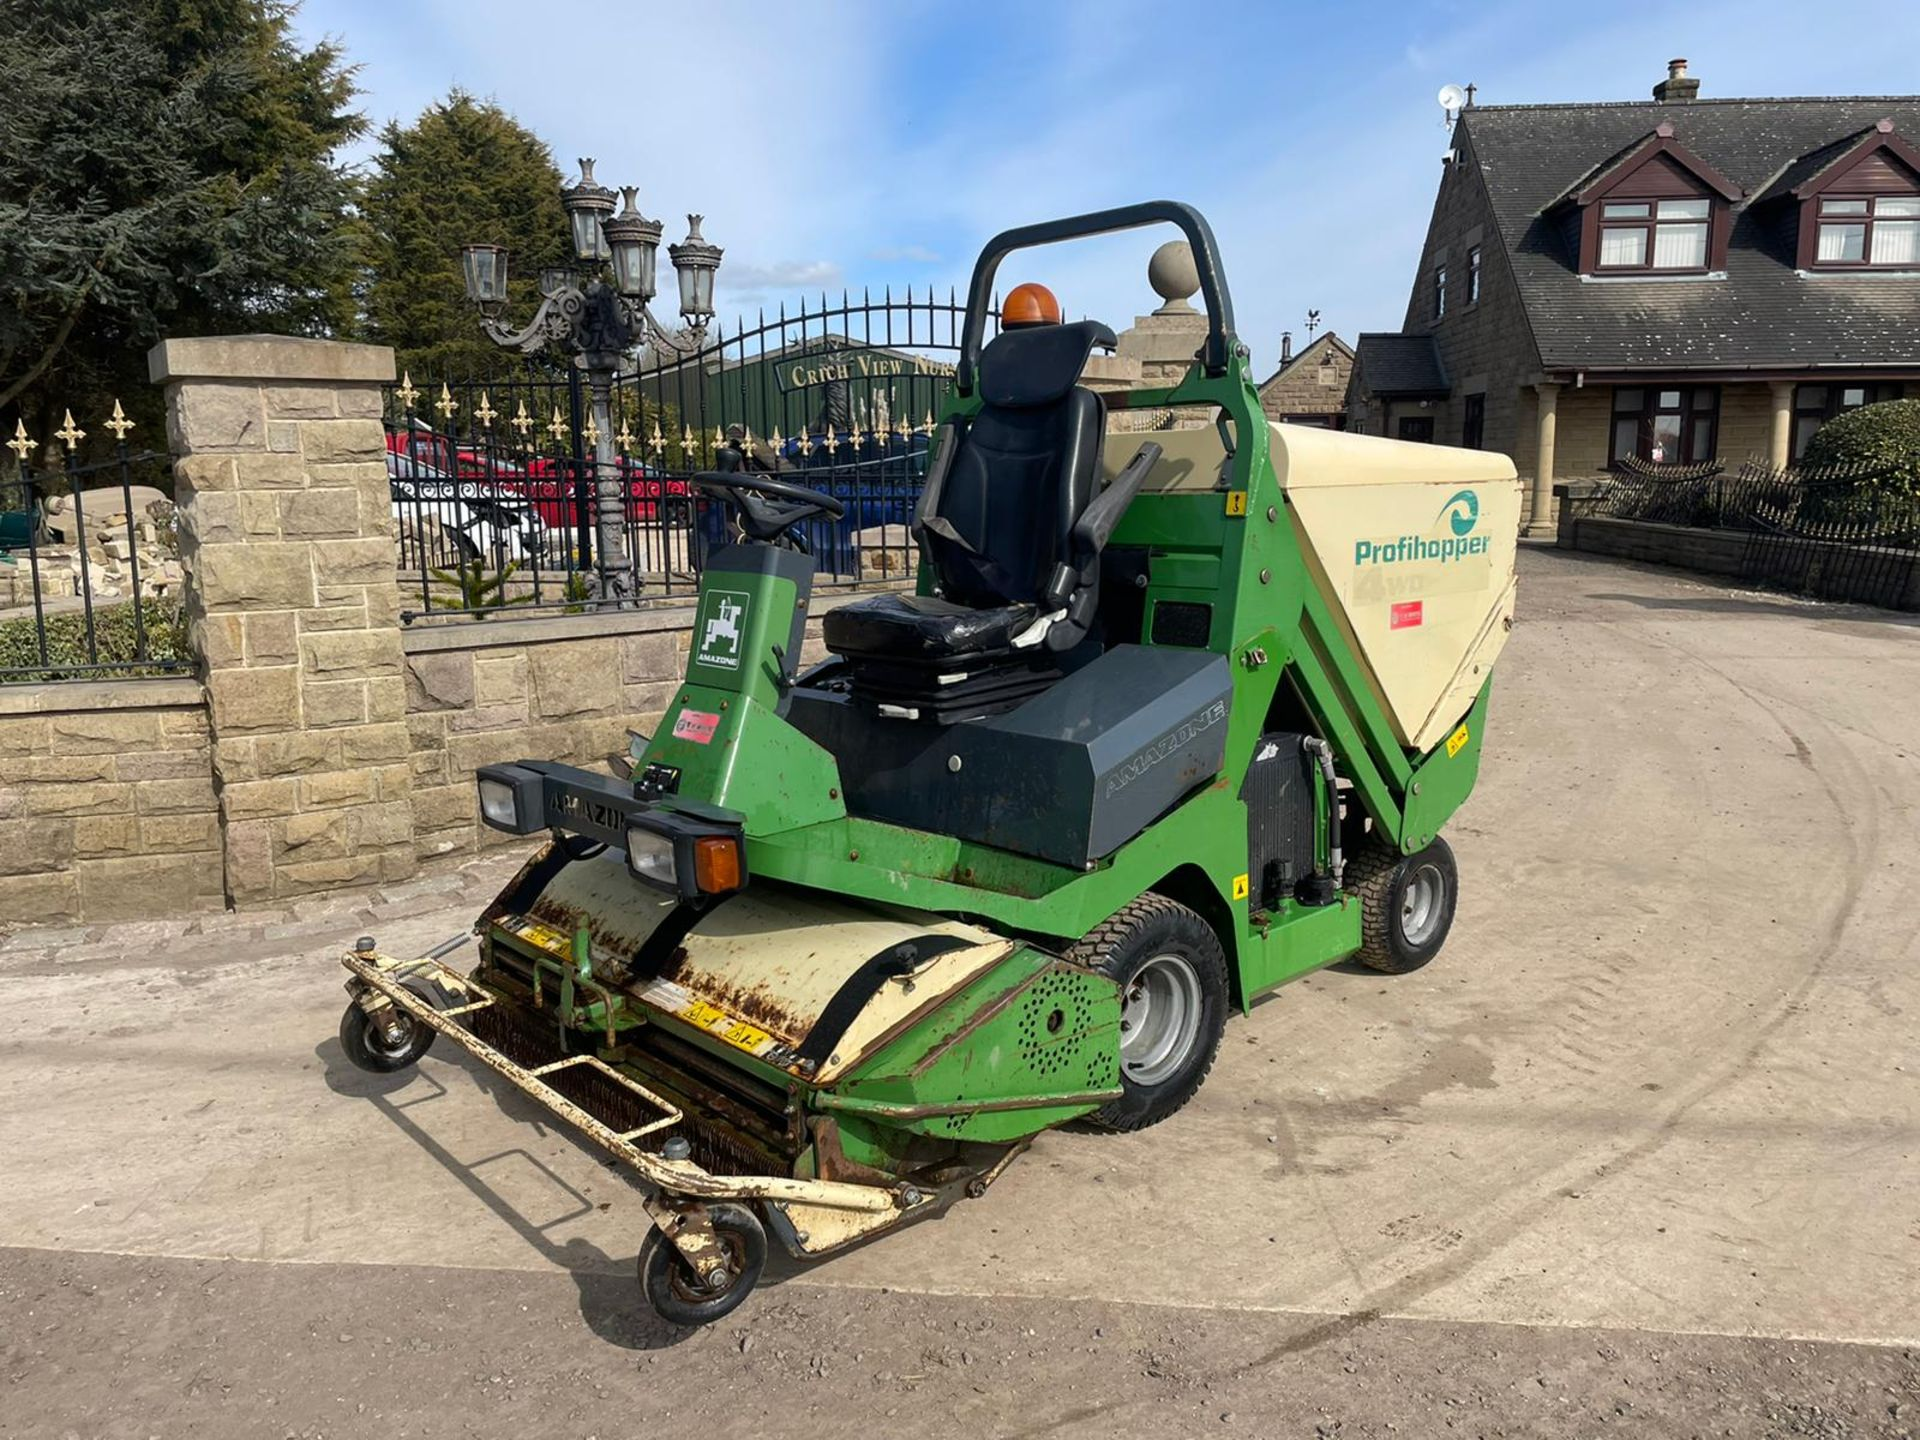 2012 AMAZONE PROFIHOPPER RIDE ON MOWER, RUNS, DRIVES AND CUTS, IN GOOD CONDITION *PLUS VAT* - Image 4 of 14